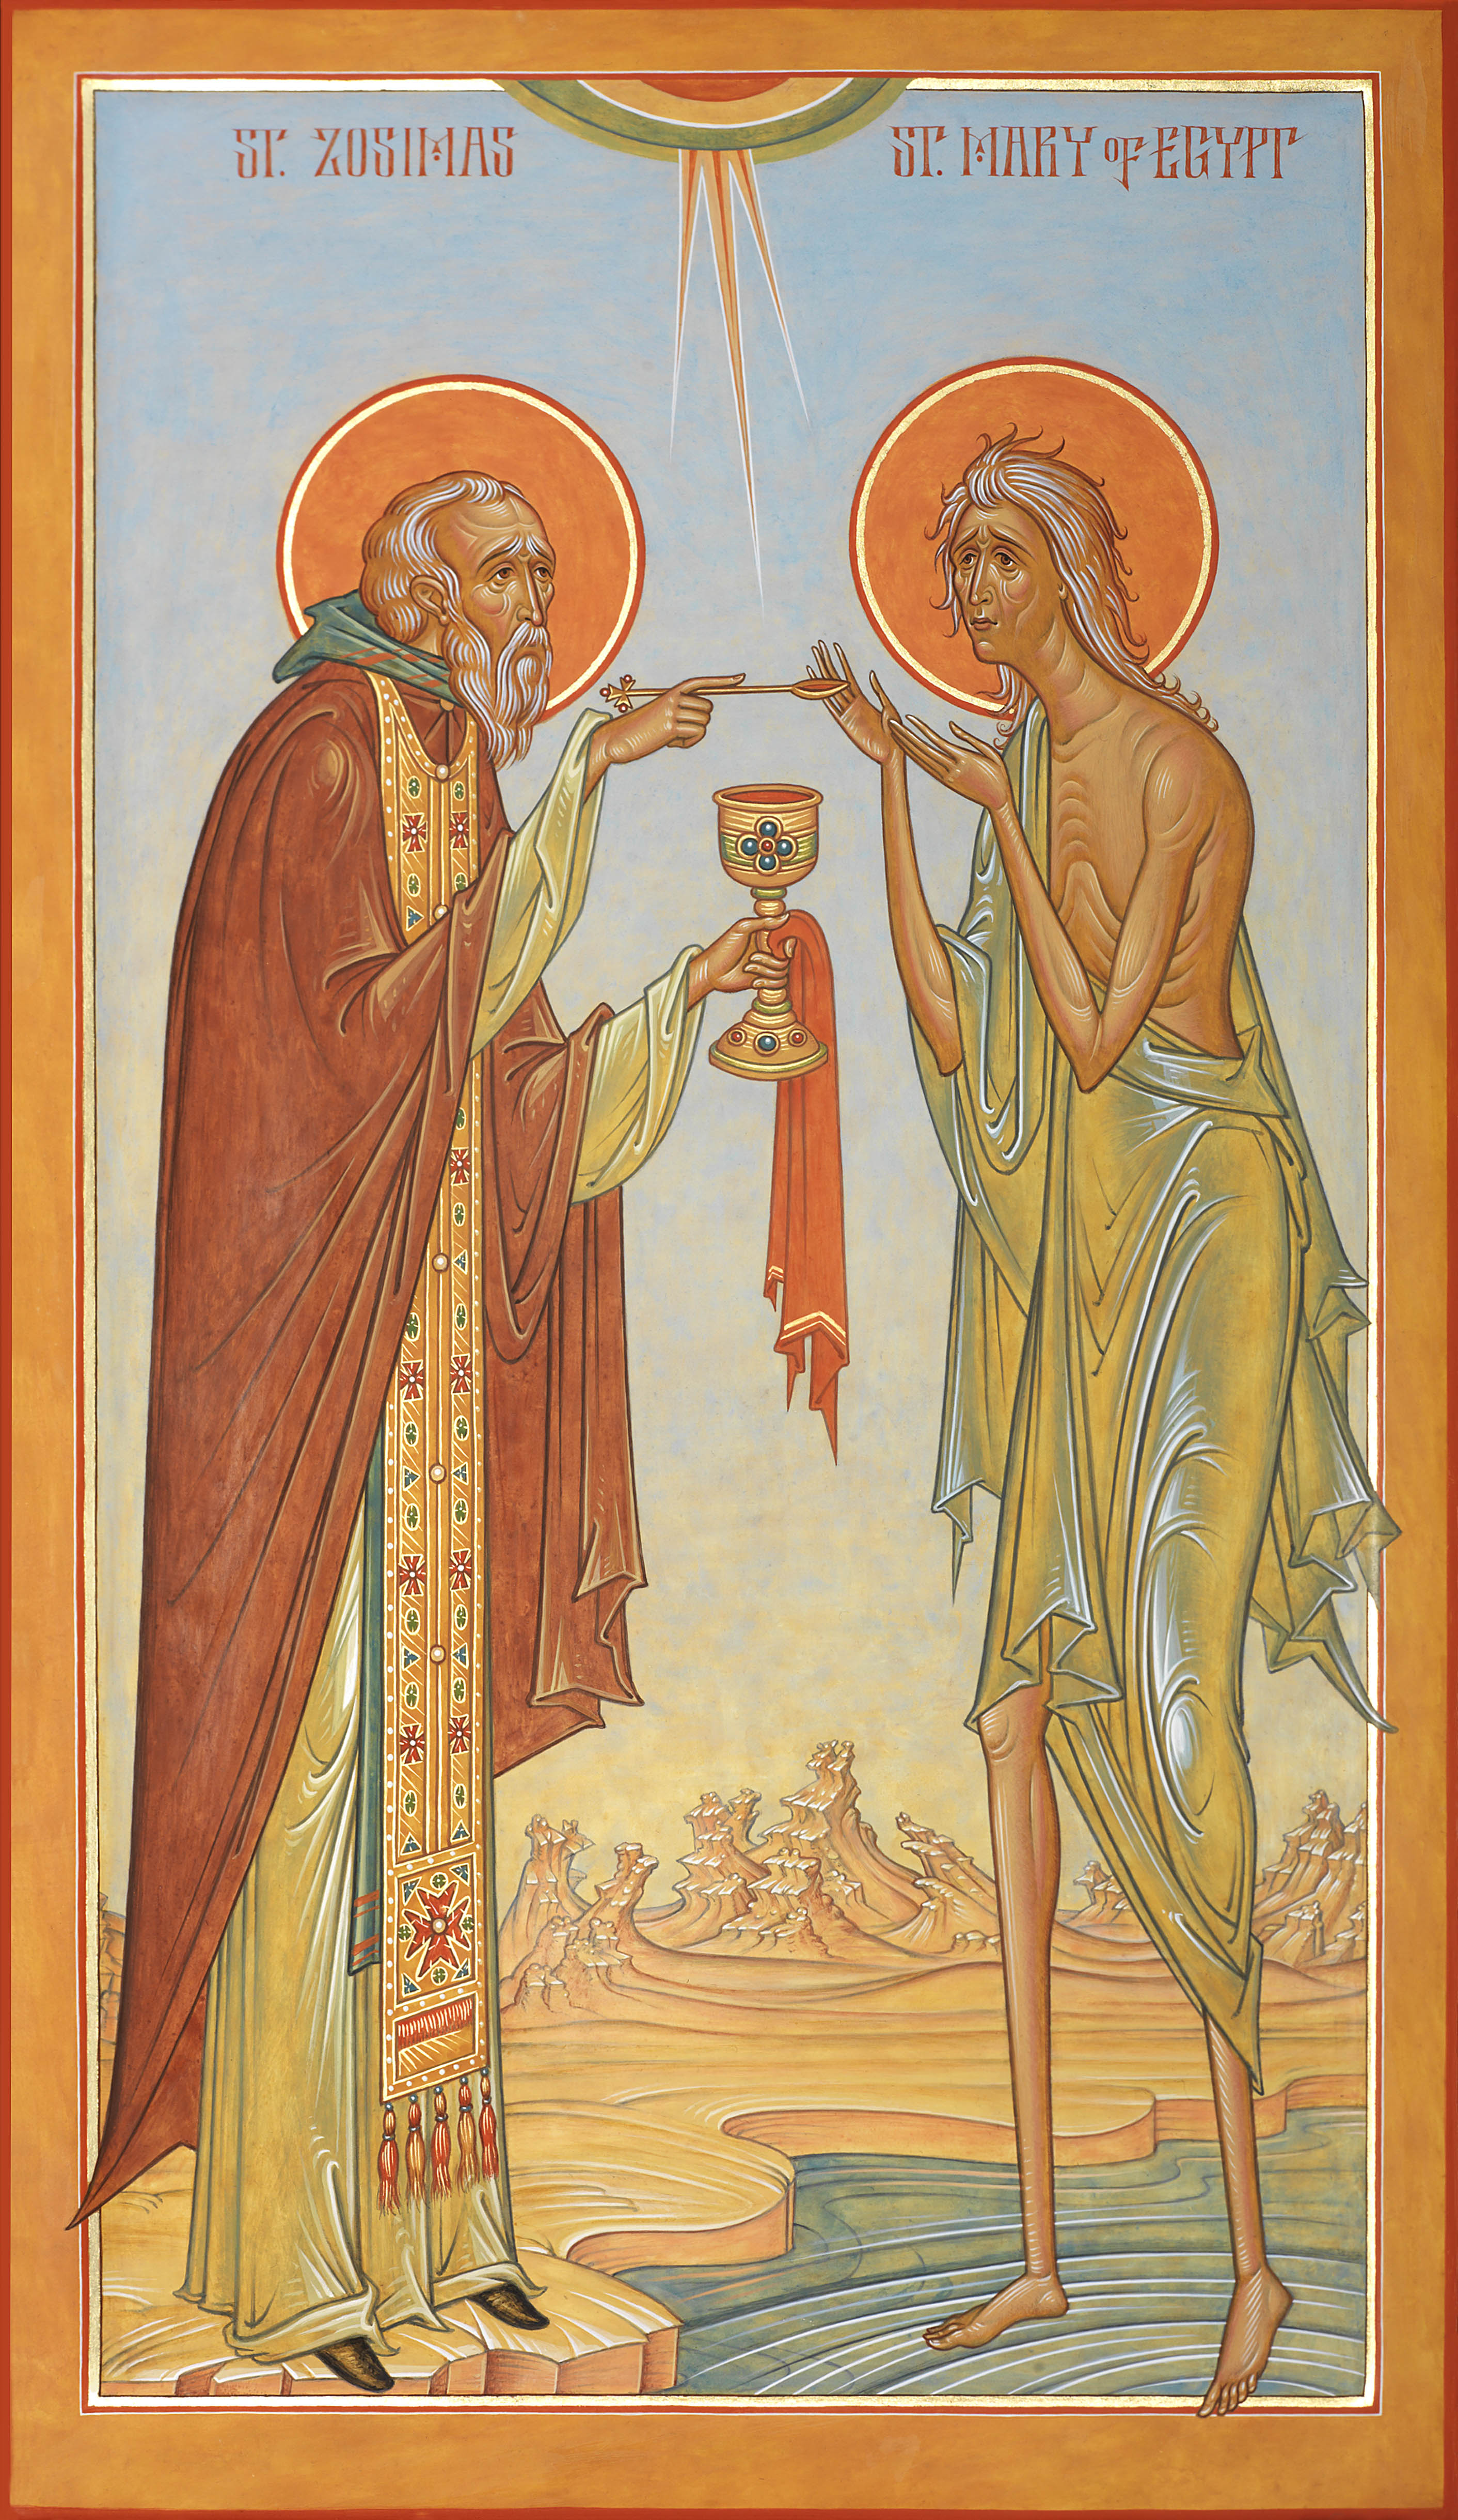 St. Mary of Egypt receiving the Holy Eucharist from St. Zosimas by Fr. Silouan Justiniano.  Egg tempera on wood, 10 7/8 in. x 19 in.